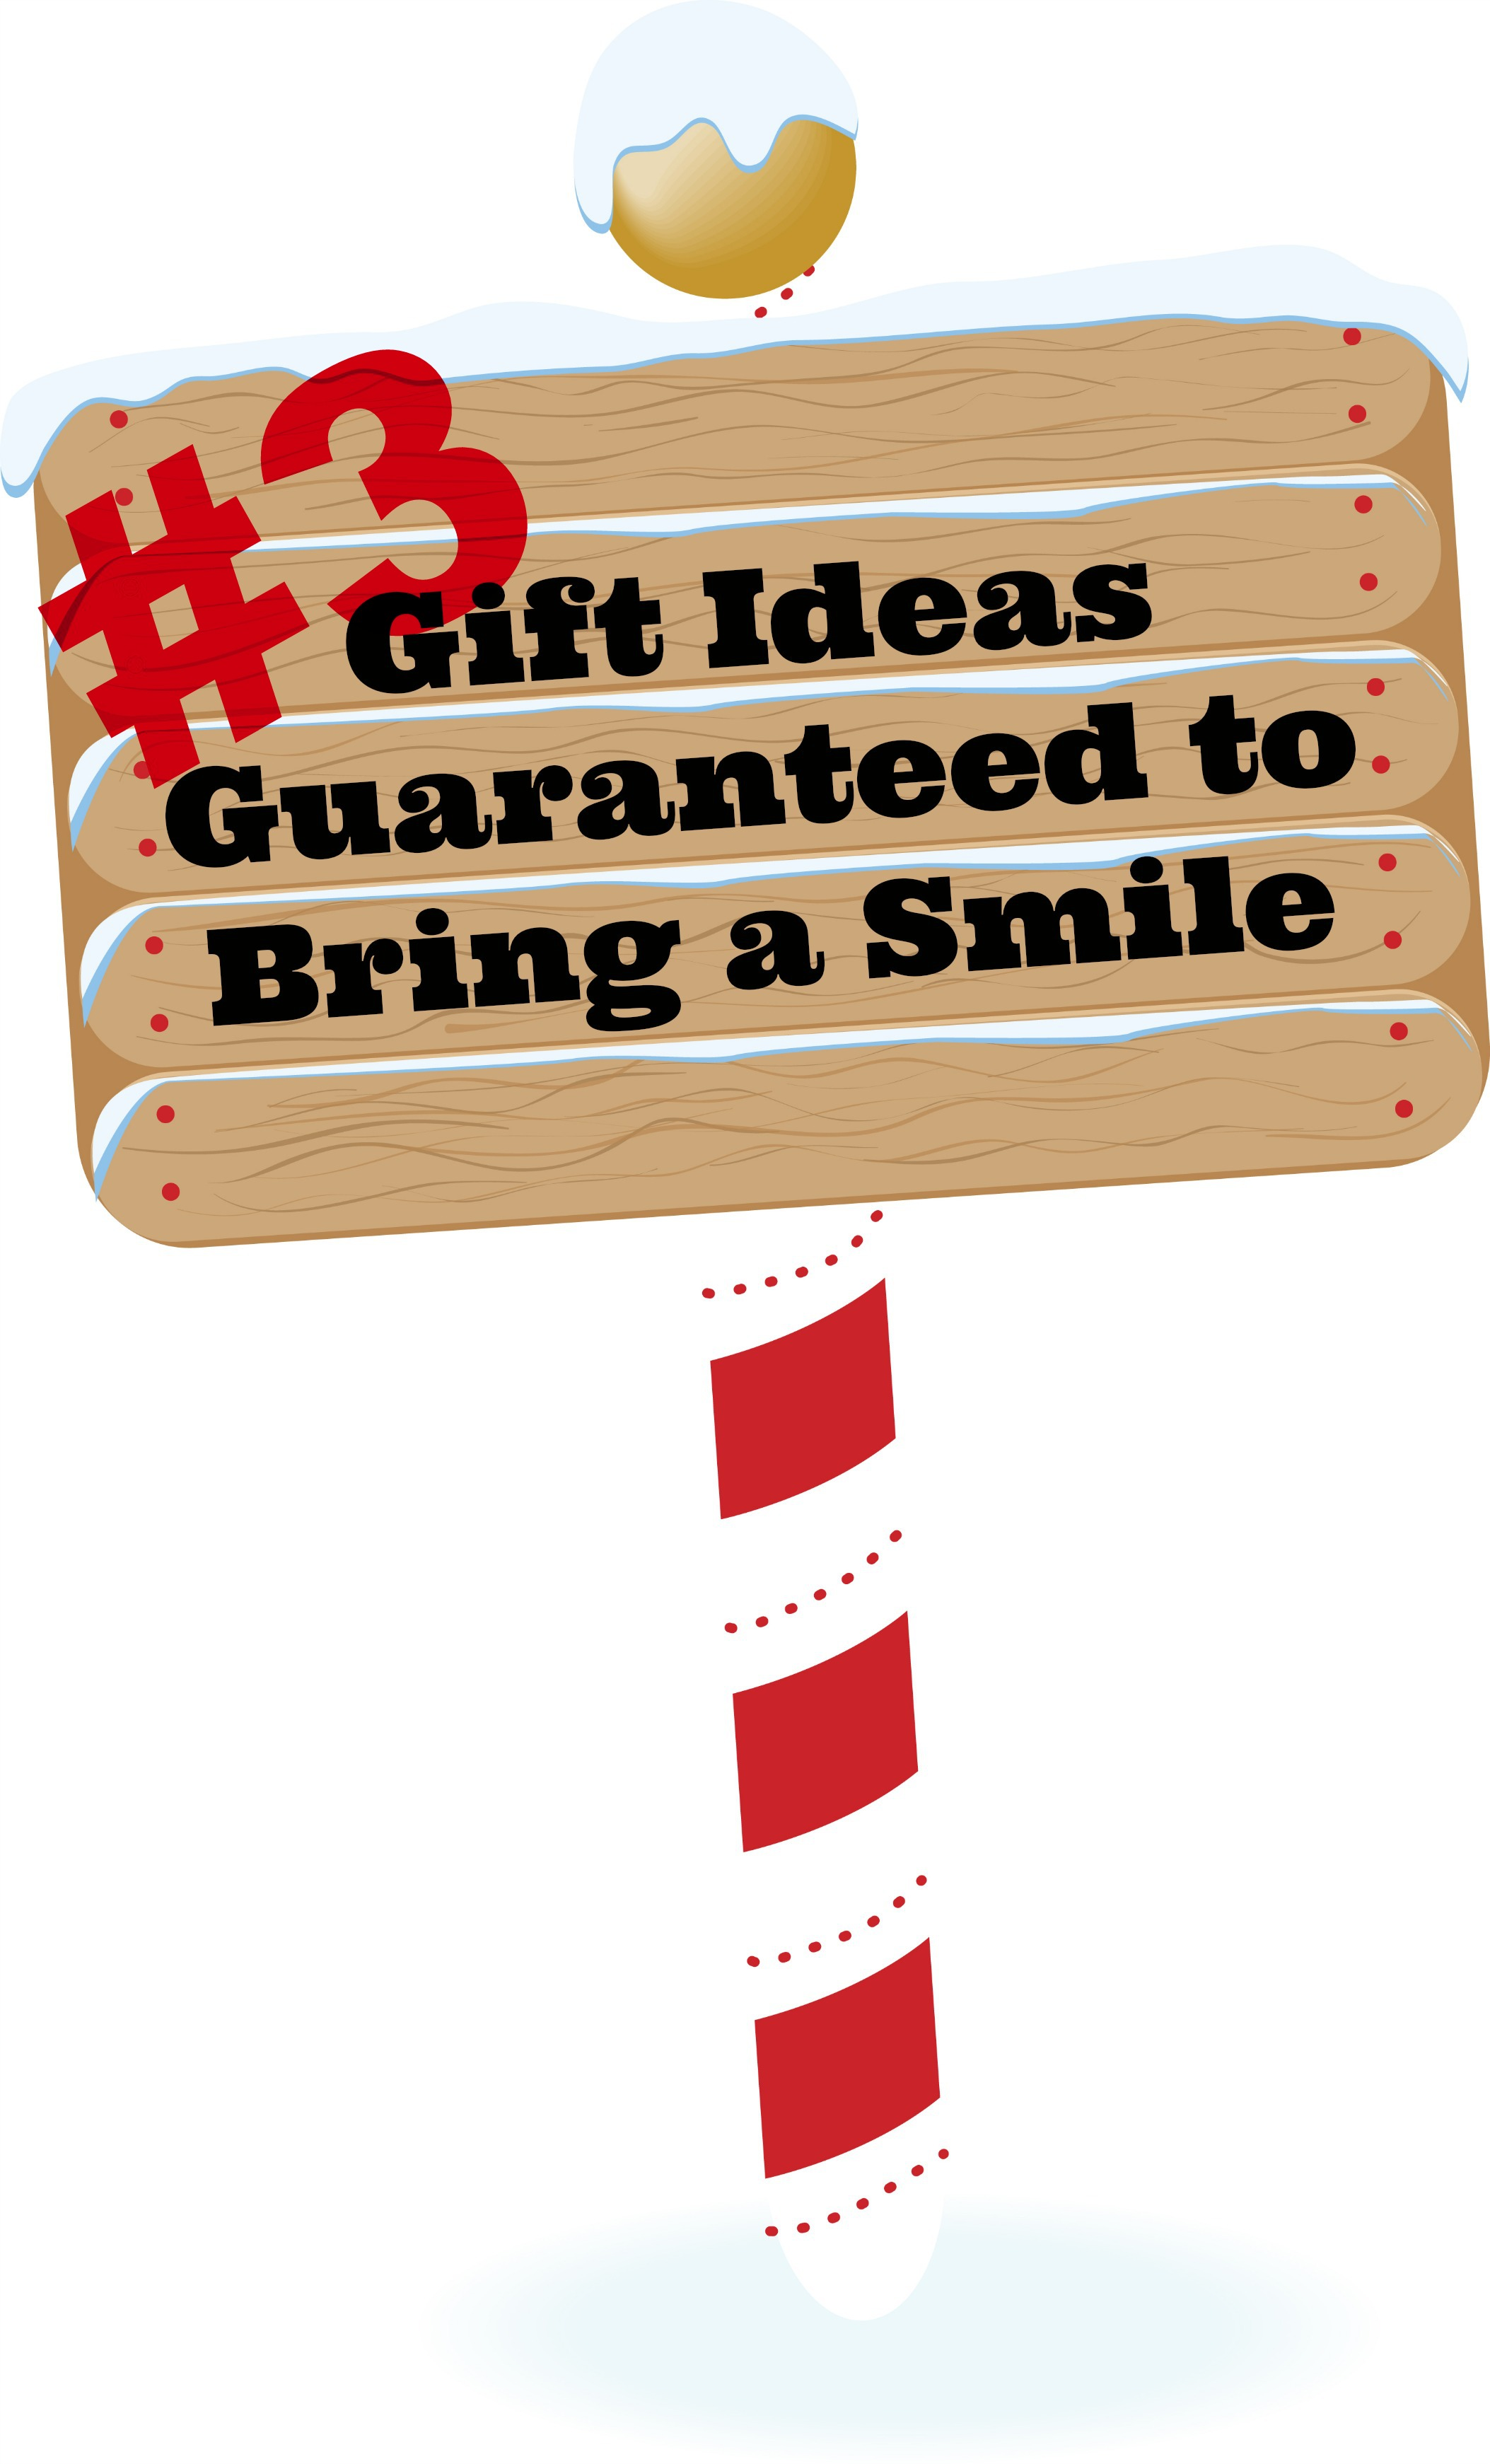 Gift Ideas Guaranteed to Bring a Smile – Idea 3